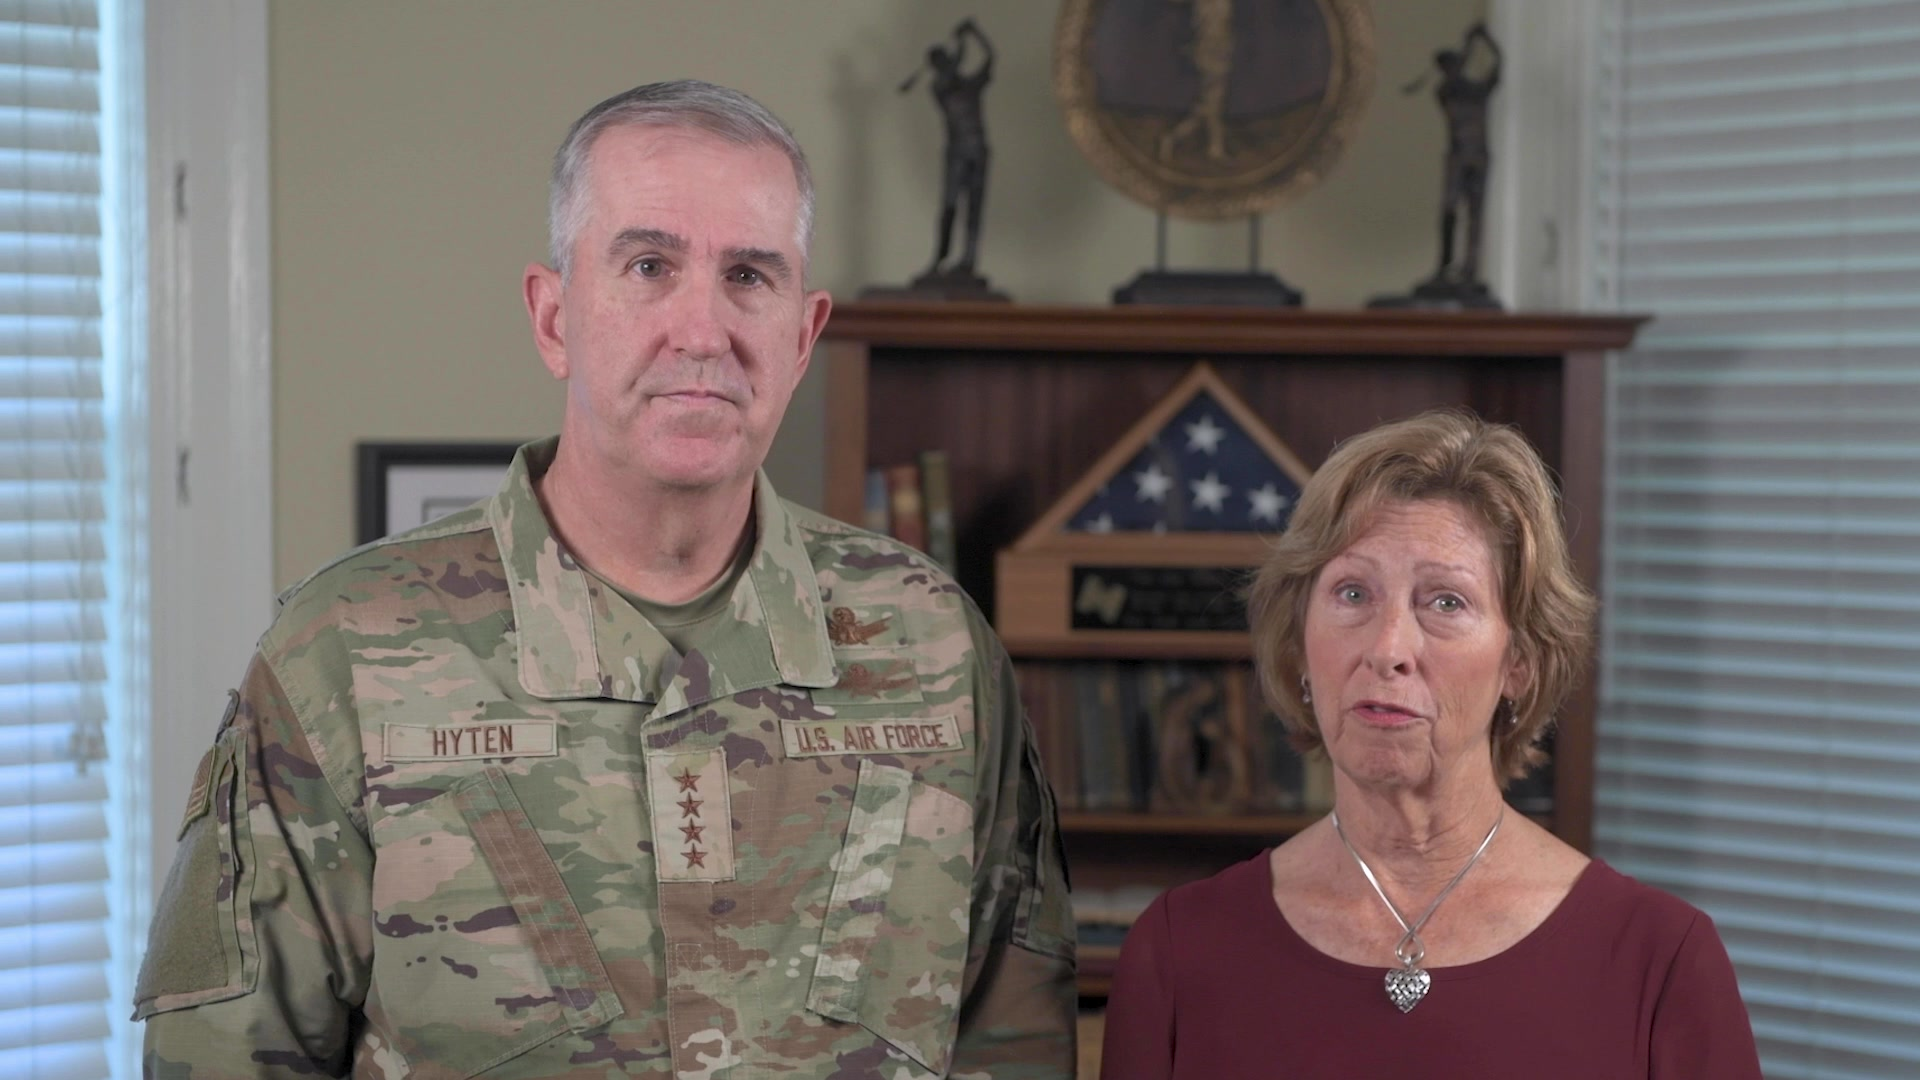 Vice Chairman of the Joint Chiefs of Staff Gen. John E. Hyten and his wife, Laura Hyten, deliver a message for Suicide Prevention Month. (DOD Video by Navy Petty Officer 1st Class Carlos M. Vazquez II)